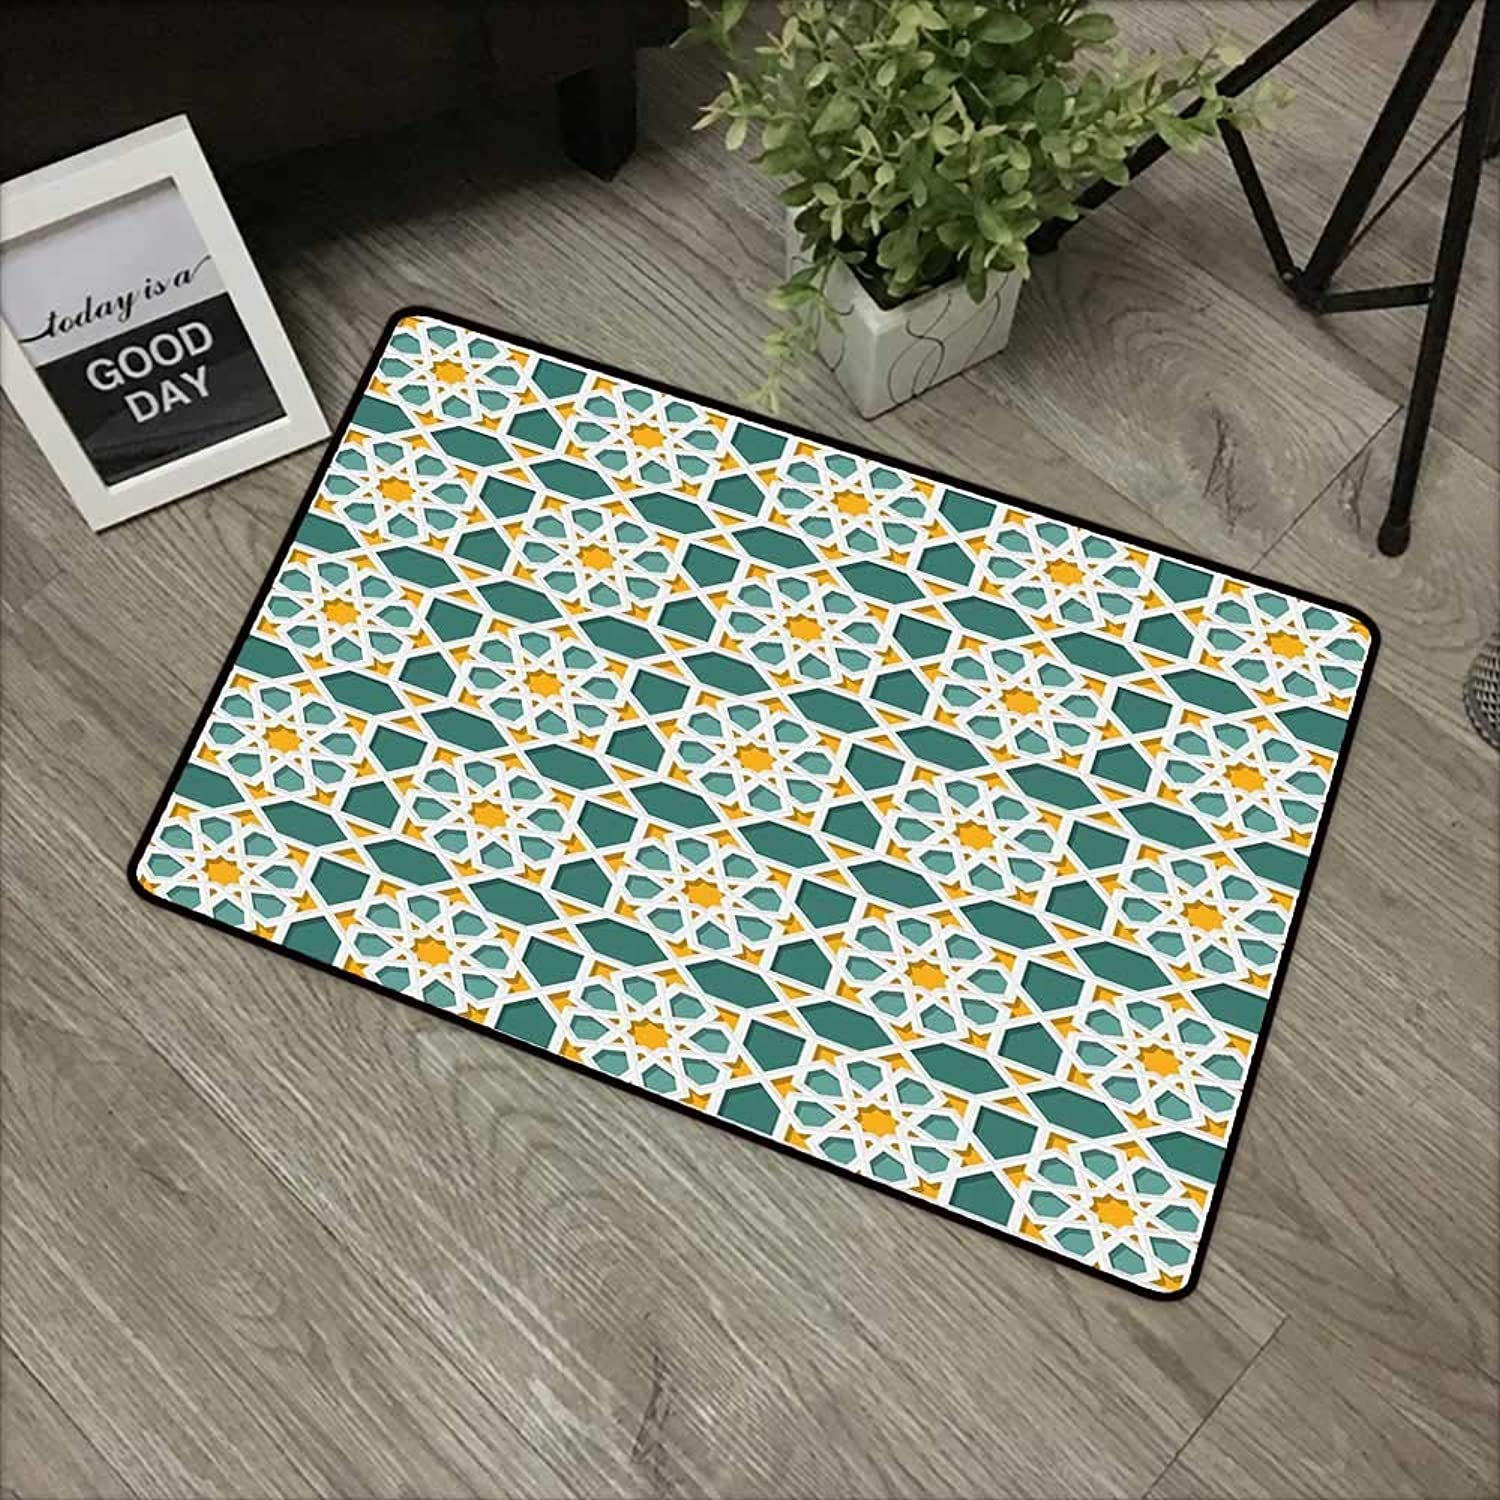 Living room door mat W35 x L59 INCH Teal,Mgoldccan Interlacing Star Pattern Ethnic Asian Ornamental Mosaic Design Traditional,Teal Marigold Easy to clean, no deformation, no fading Non-slip Door Mat Ca